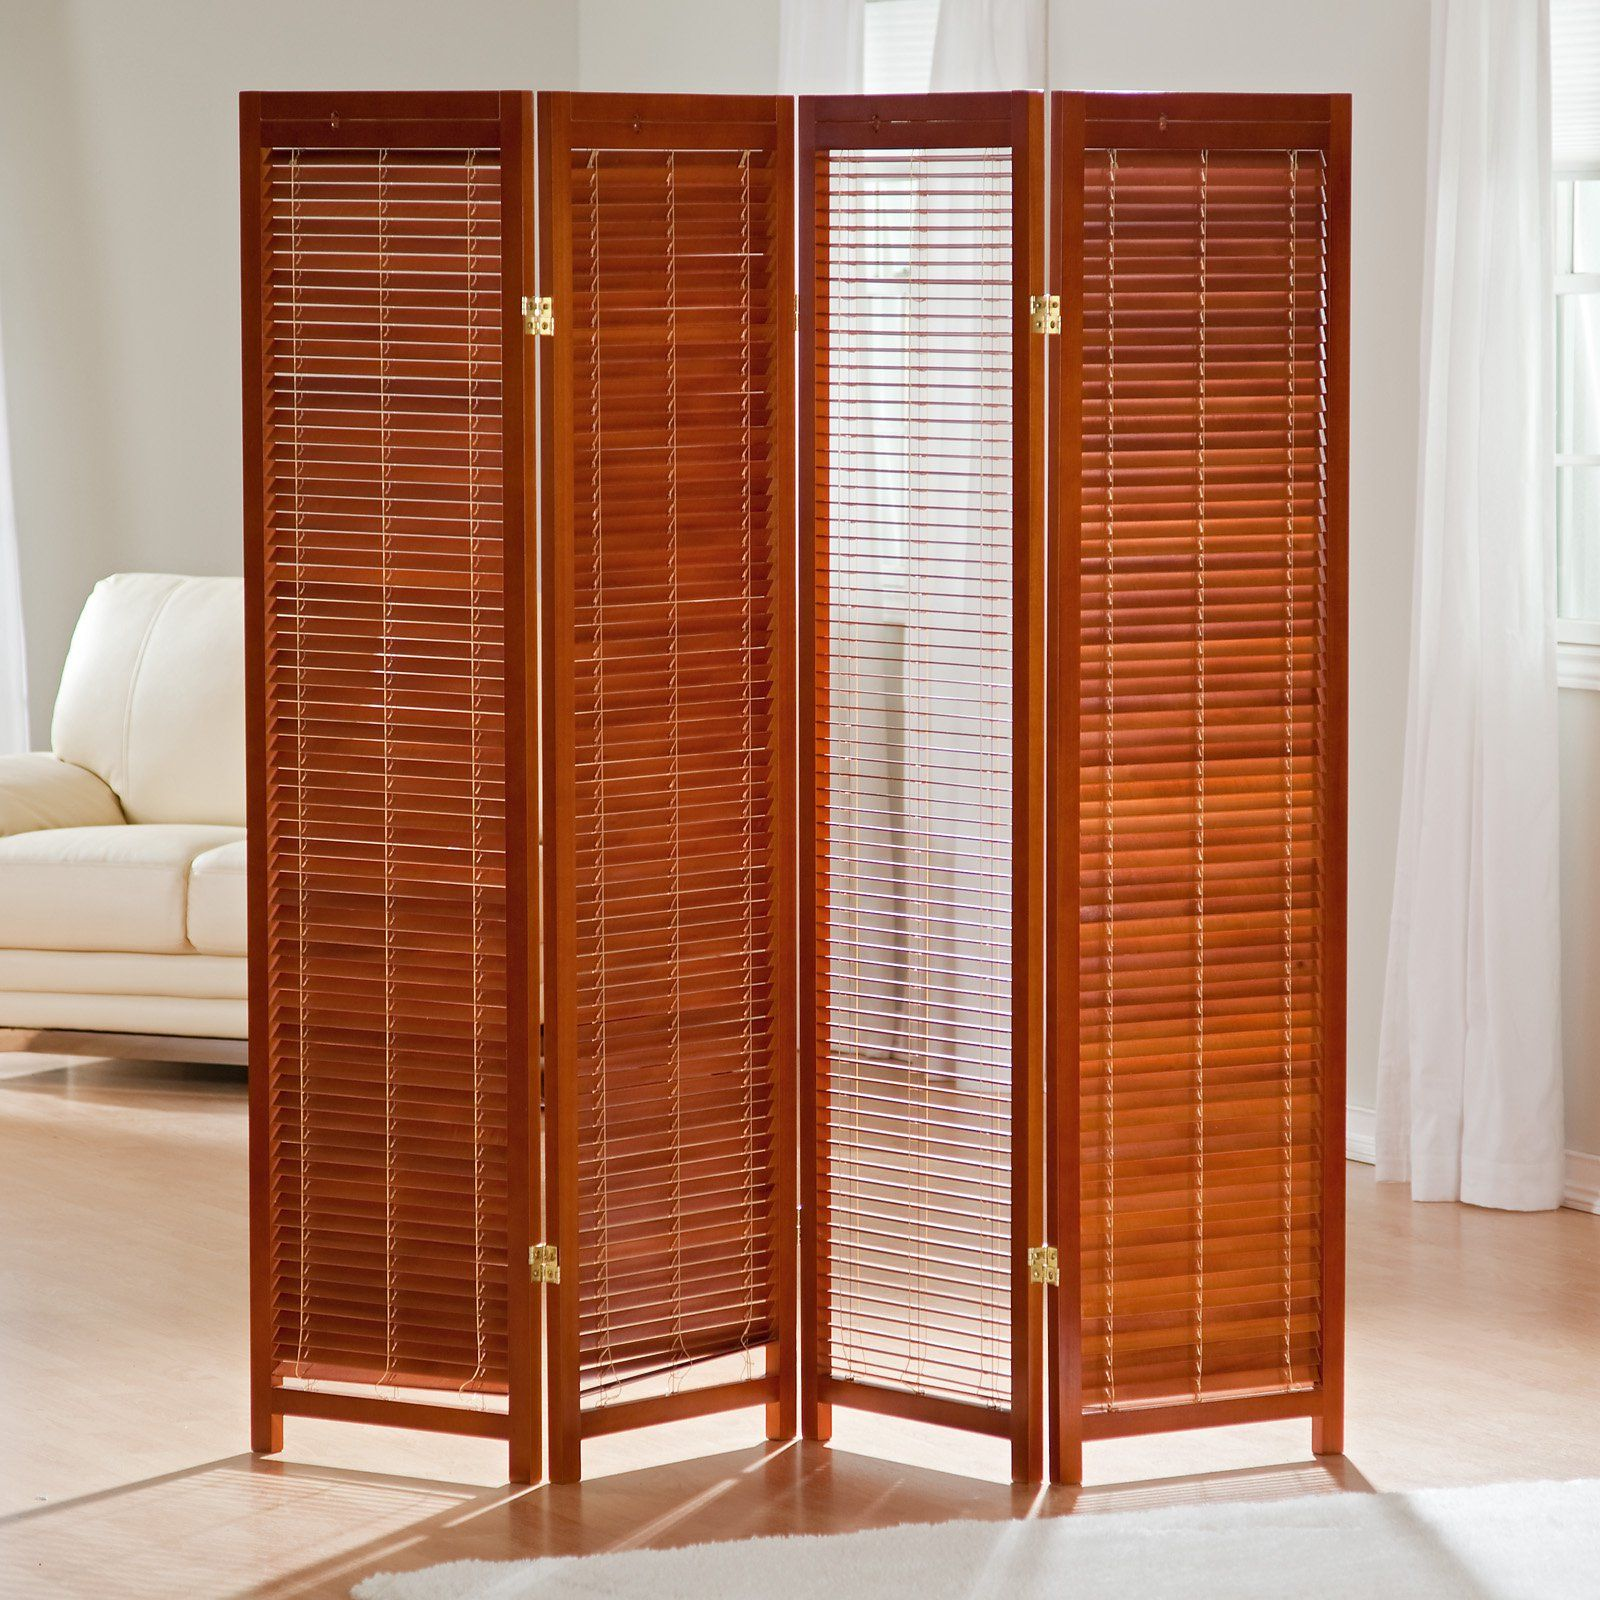 Have to have it Tranquility Wooden Shutter Screen Room Divider in